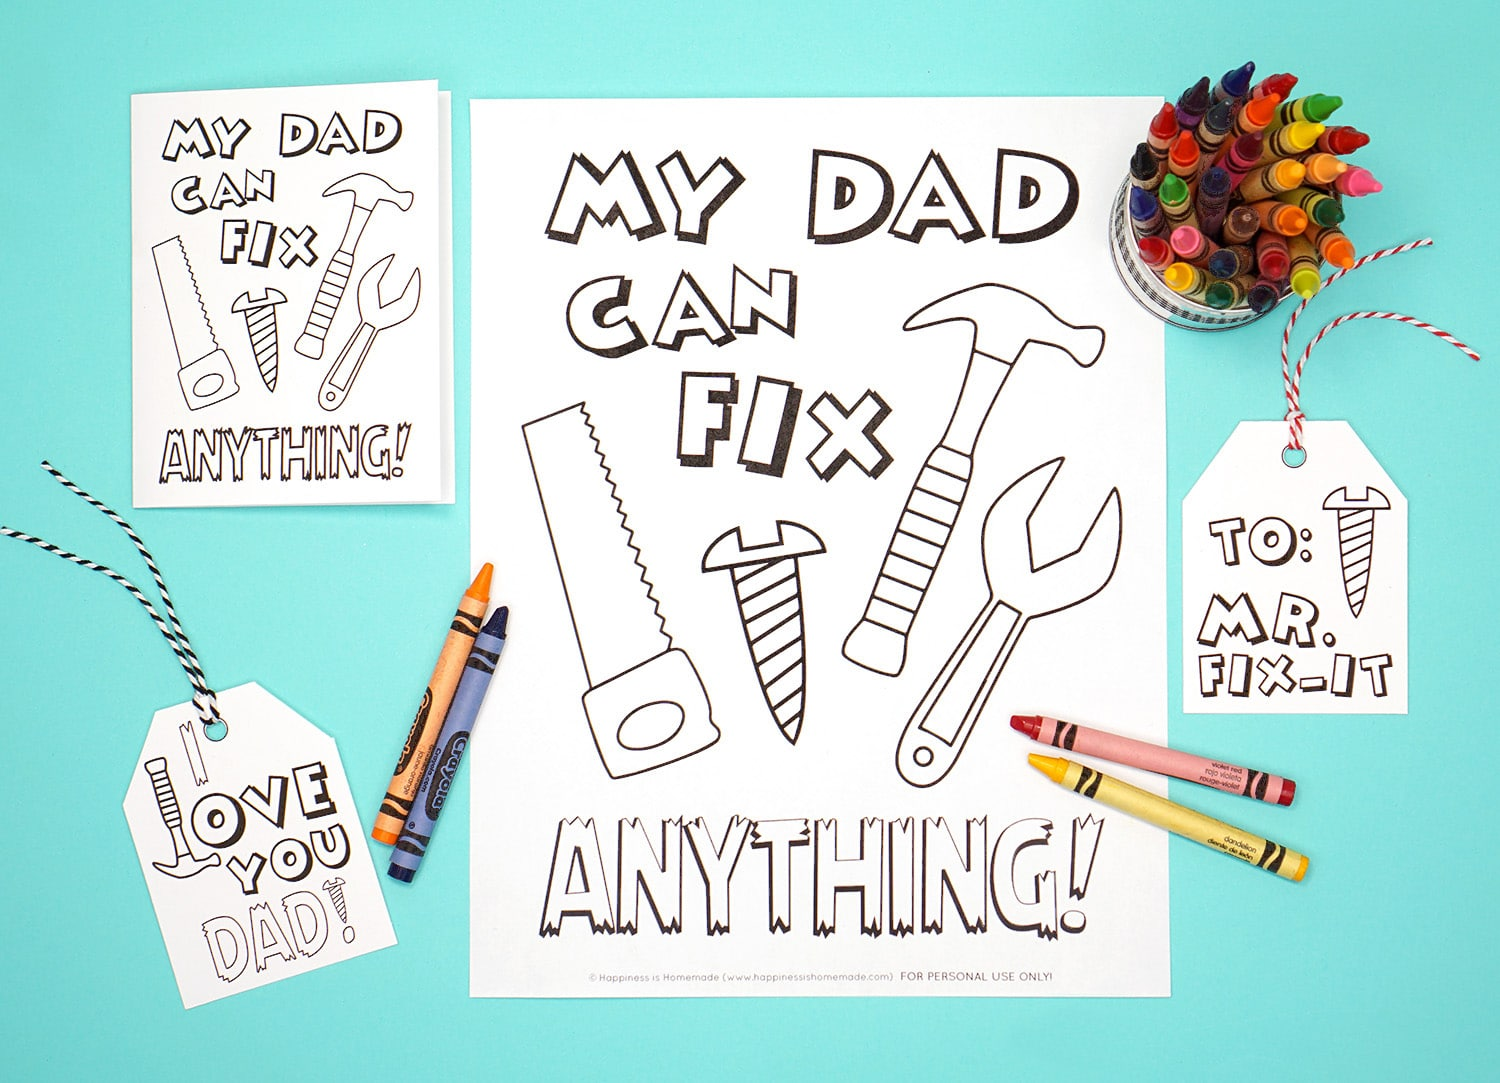 image relating to Printable Fathers Day Card called Printable Fathers Working day Card + Coloring Web page - Joy is